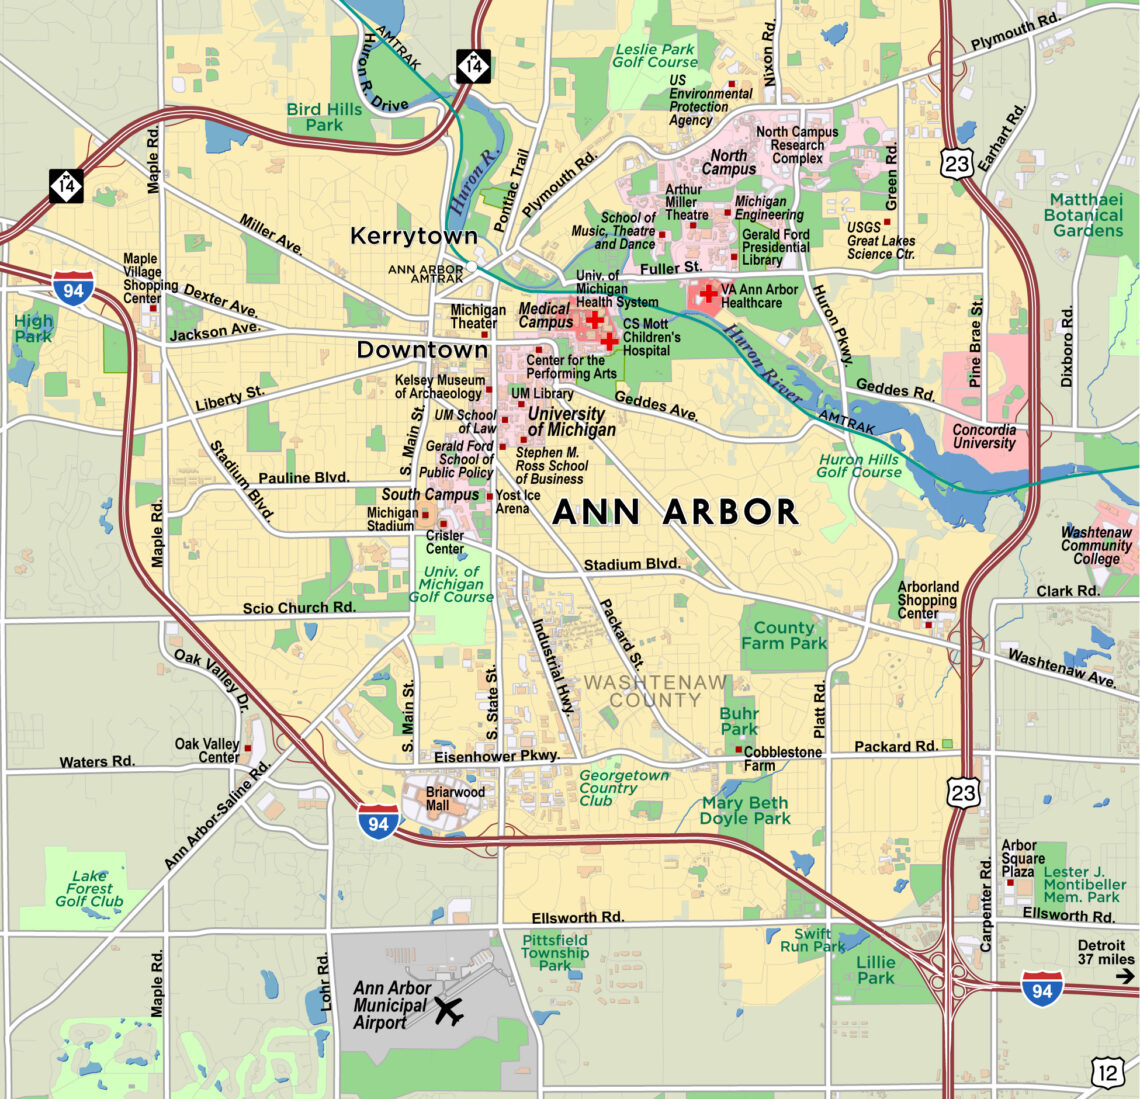 Map Of Ann Arbor Michigan Ann Arbor, Michigan | Red Paw Technologies